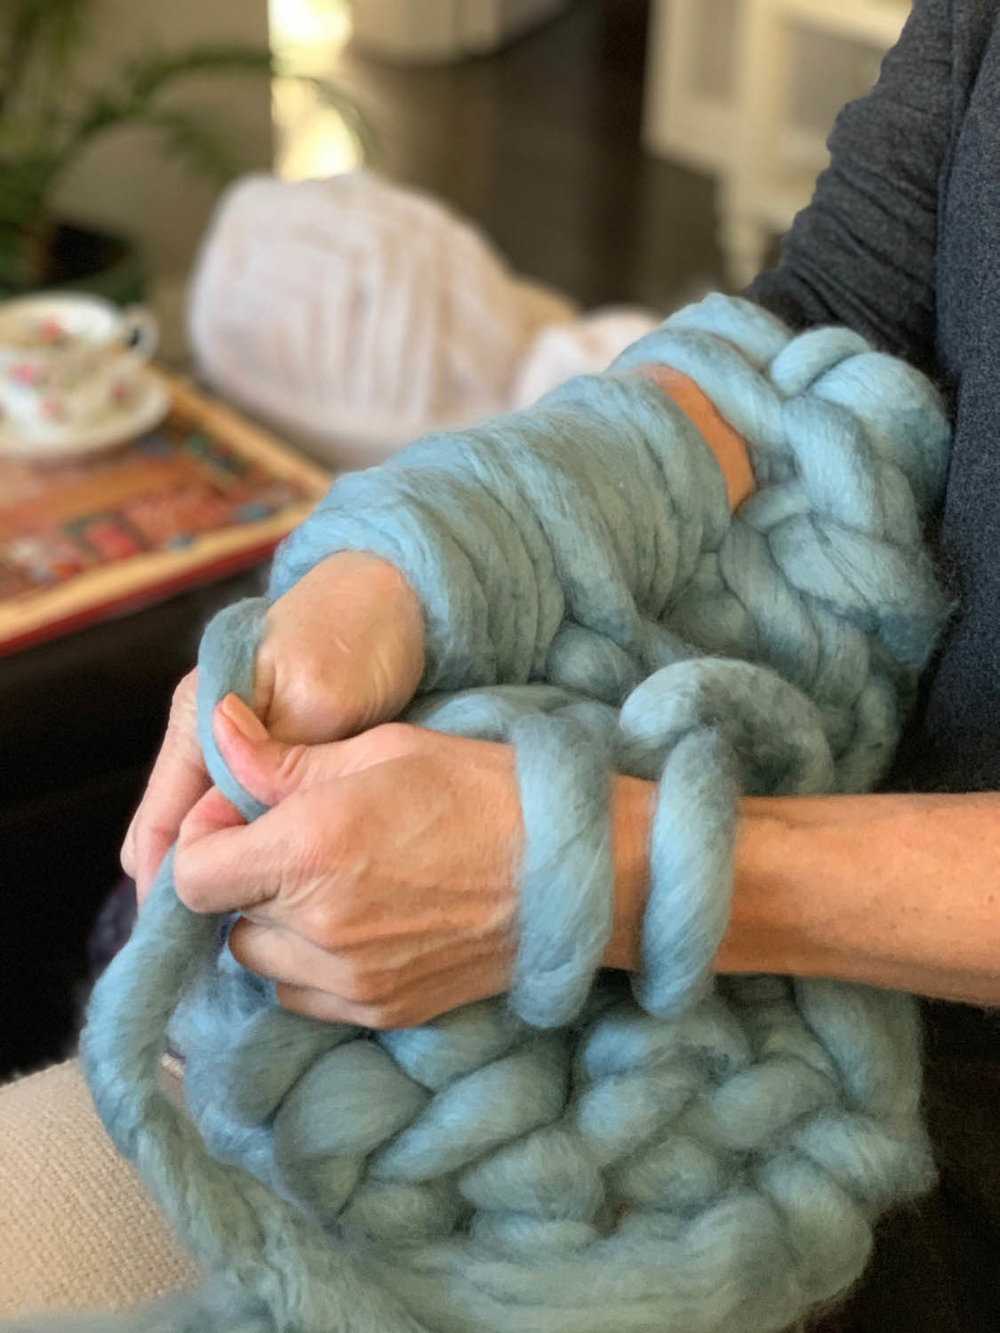 Making a single knit stitch on arms while making a 1-hour arm-knitted throw